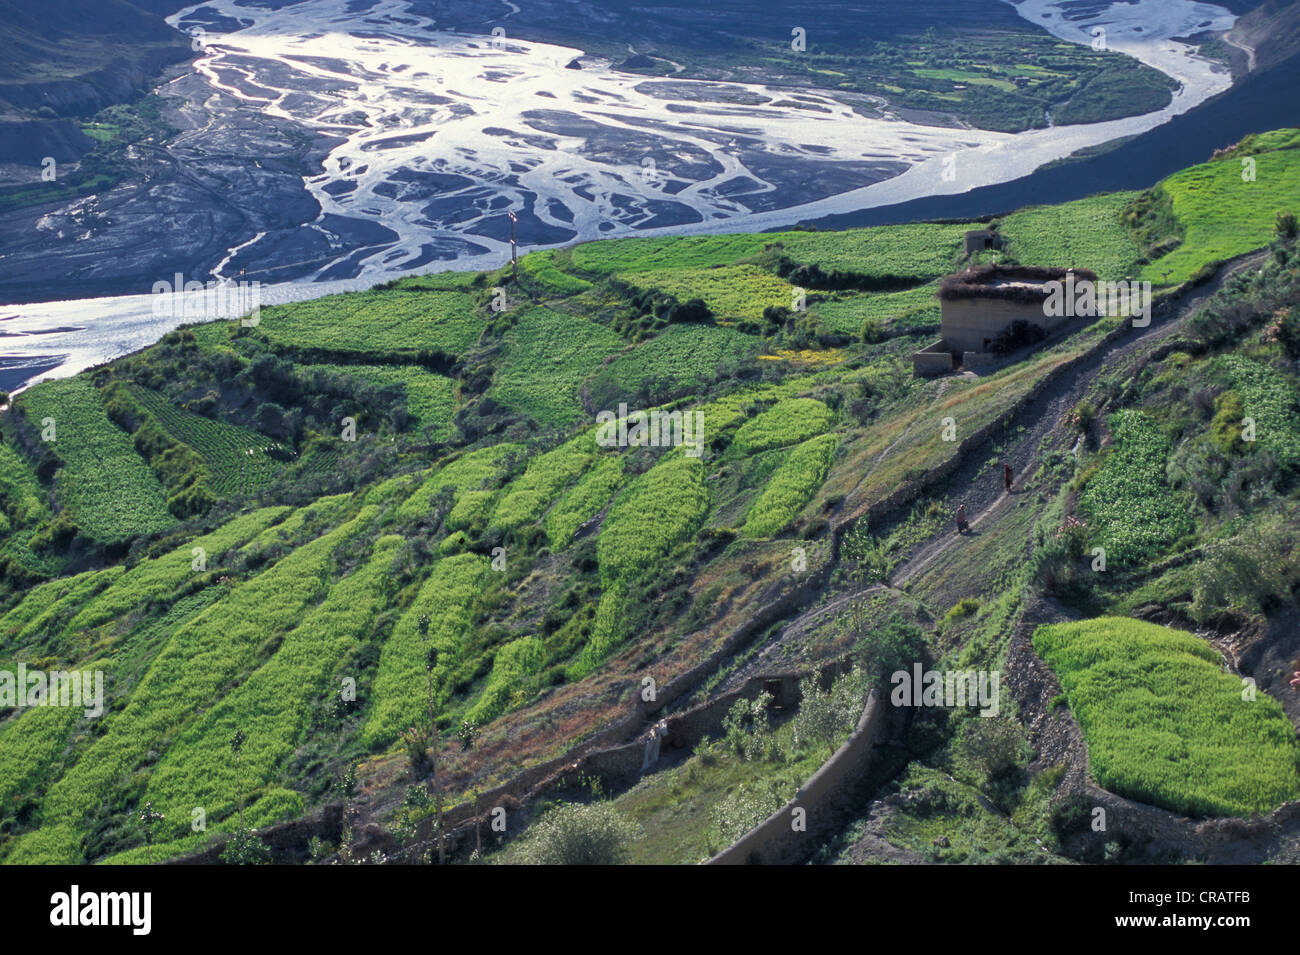 Fields, Dhankar, Spiti, Himachal Pradesh, Himalaya, North India, India, Asia Stock Photo